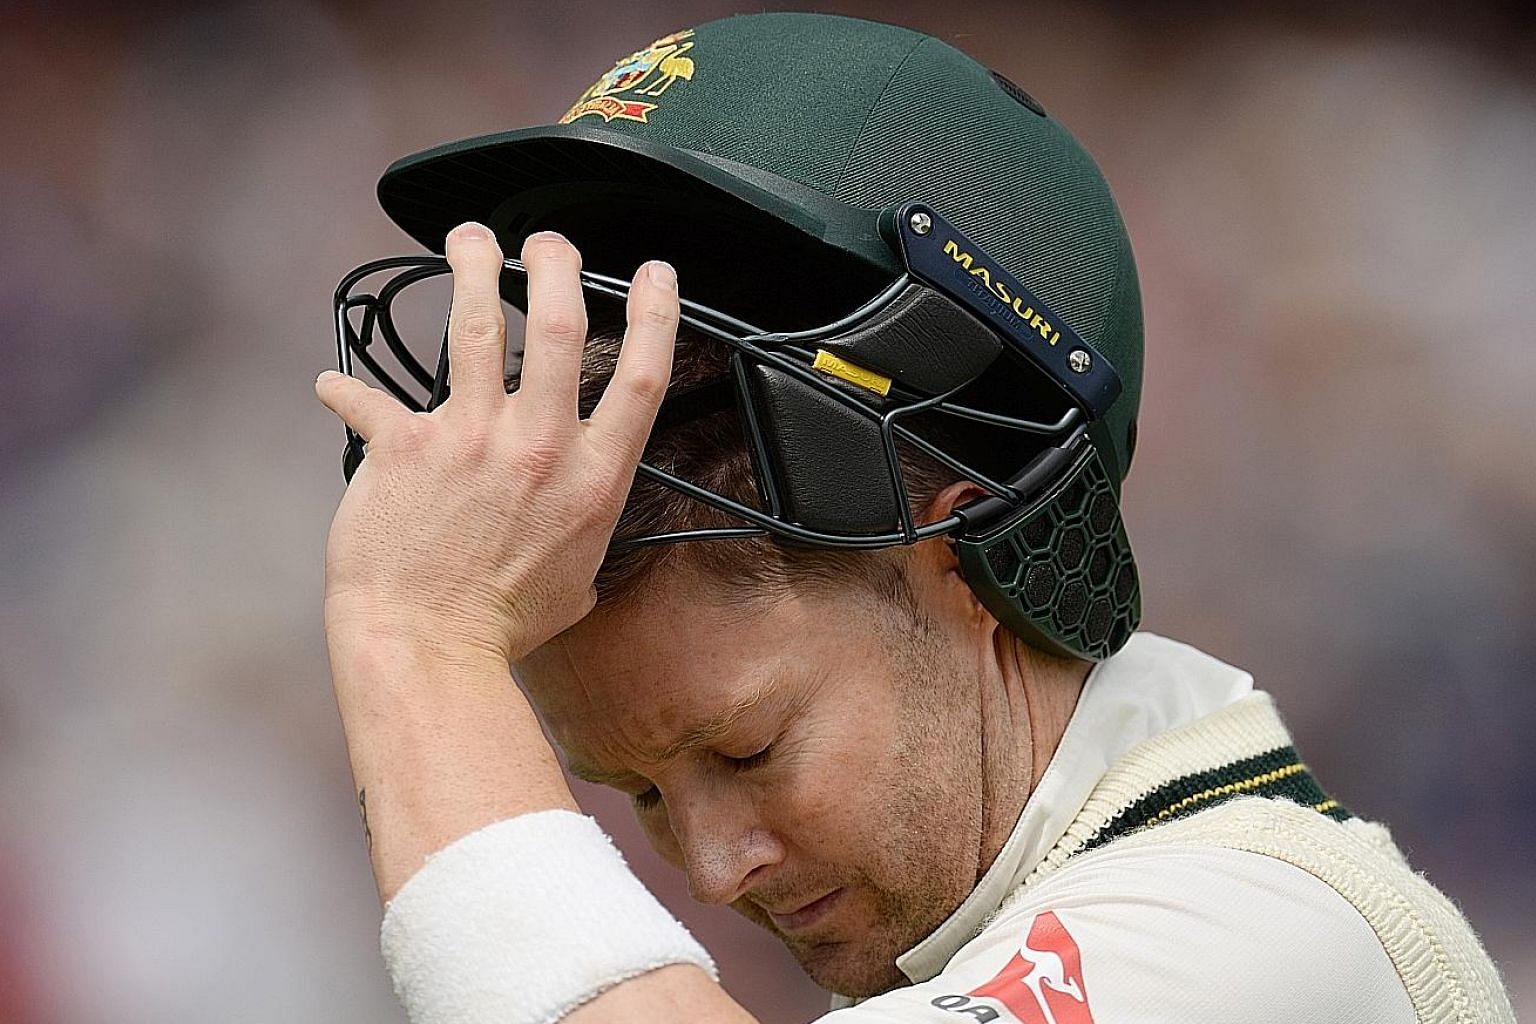 Michael Clarke after being bowled for 10 on the first day of the third Ashes Test at Edgbaston. His side collapsed for 136 in just 36.4 overs and Clarke failed again in the second innings, scoring just three runs.